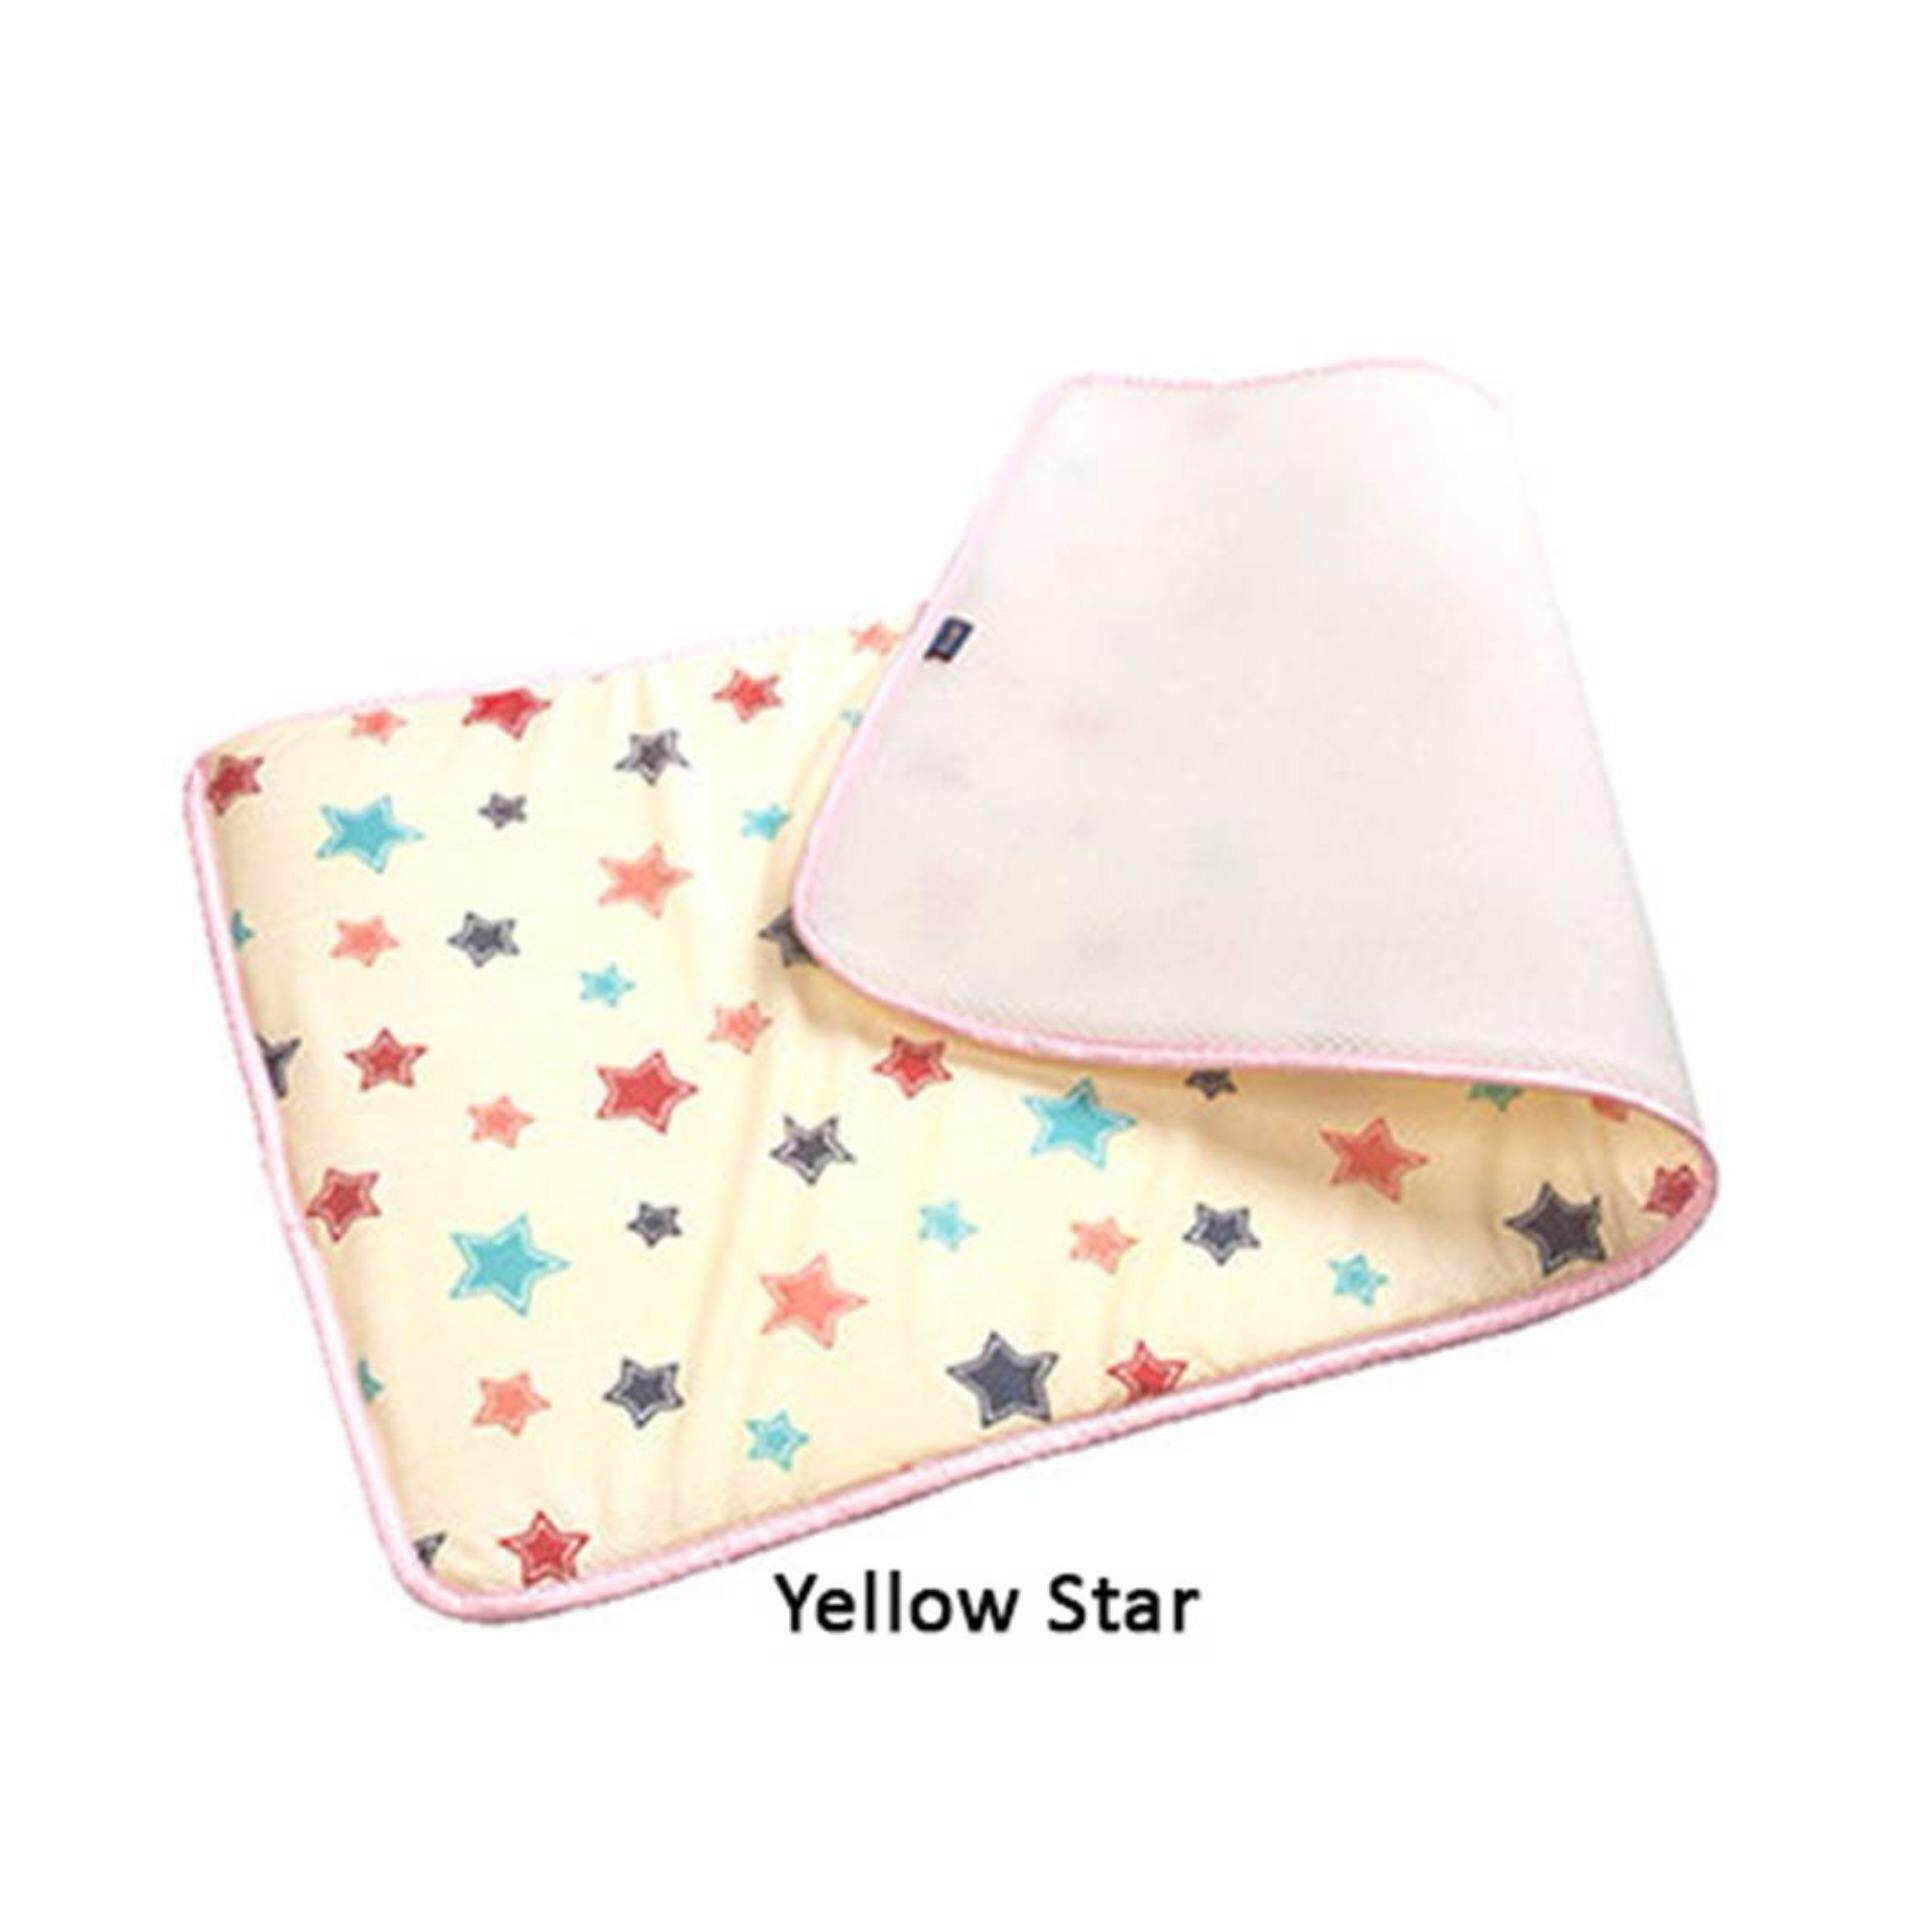 GIO KIDS MAT Single Side Yellow Star L Size with Carrier Bag